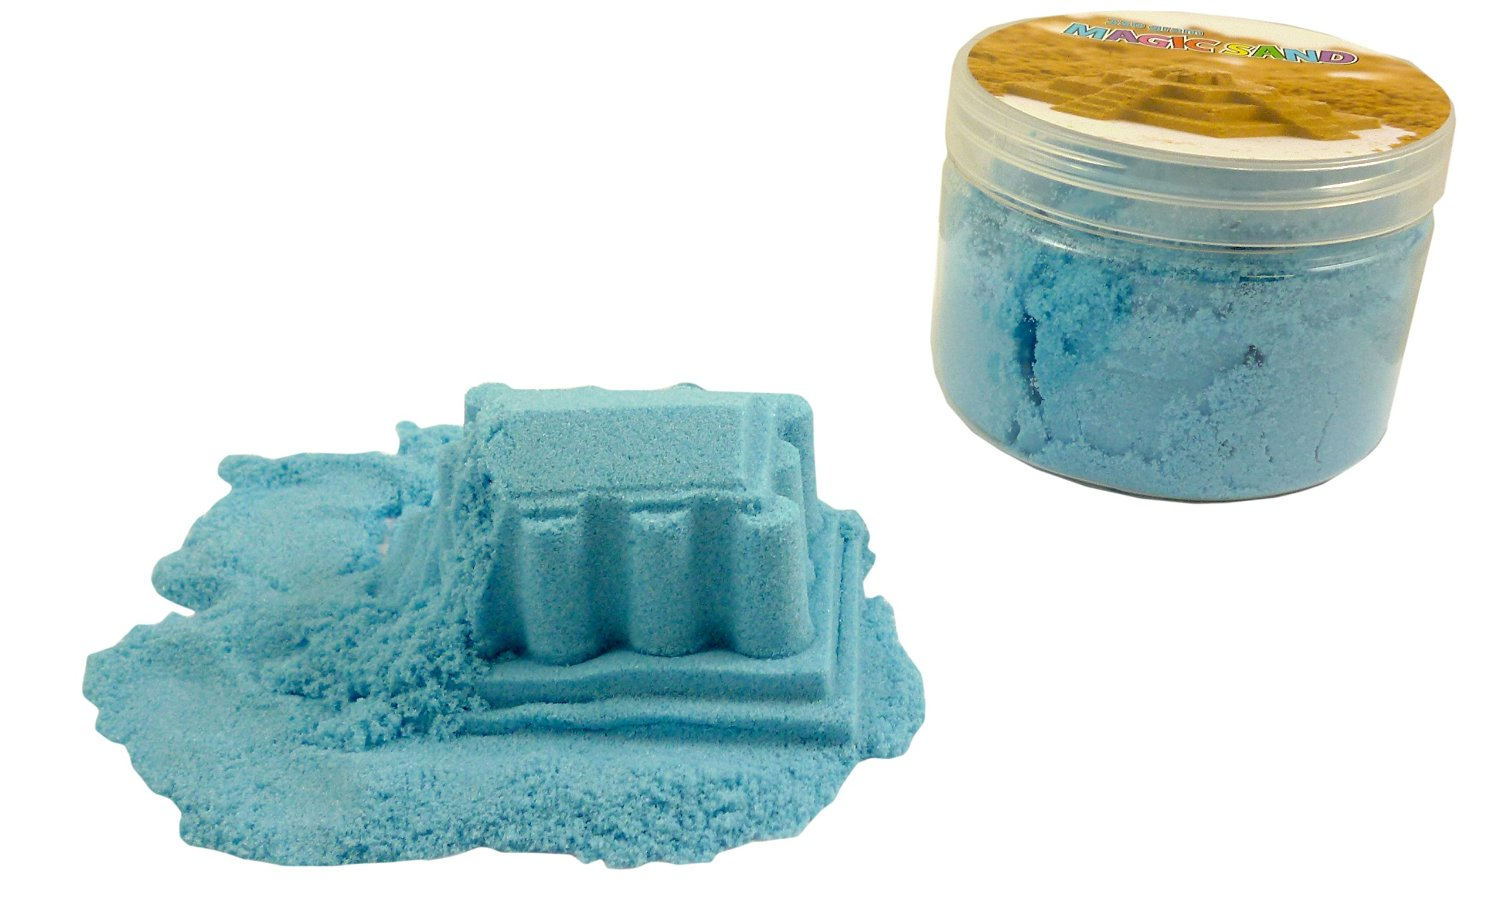 Magic Sand Refill - 250g- LIGHT BLUE - Play Sand With No Mess! - Sculpture, M...